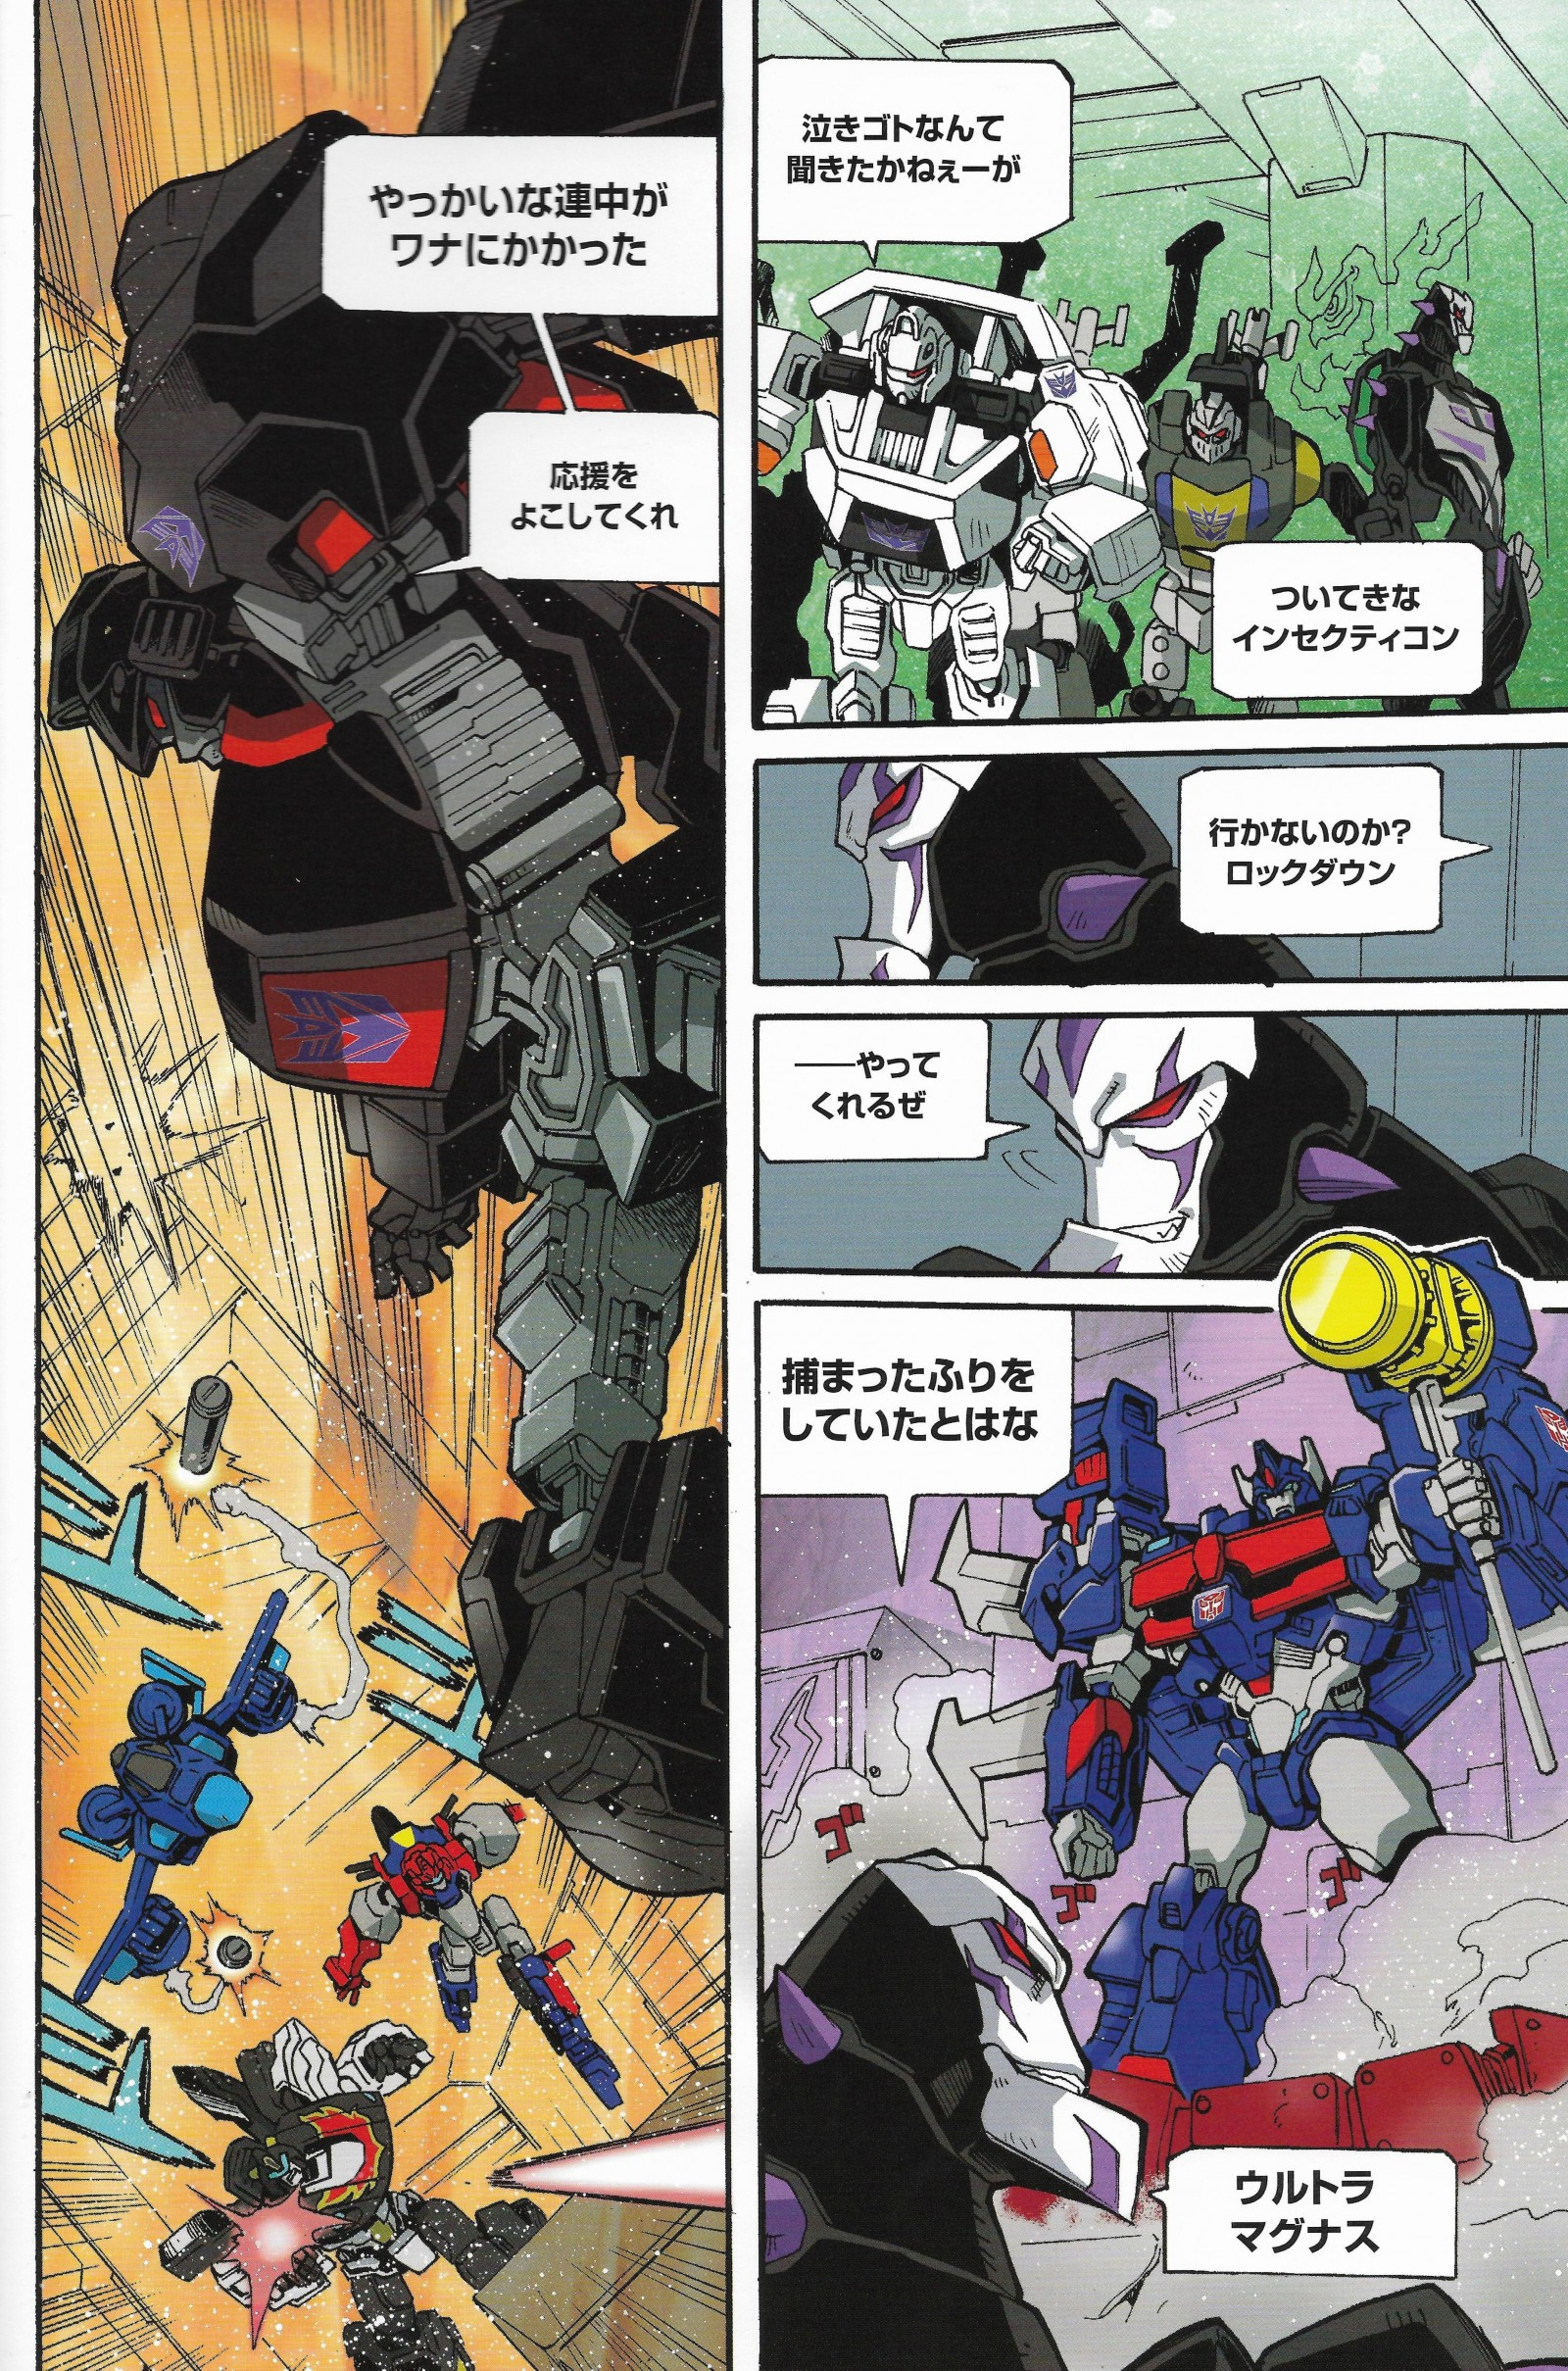 Transformers News: Scans of Transformers Adventure Manga Featuring Lockdown, Ultra Magnus, Dog Fight and BattleChargers